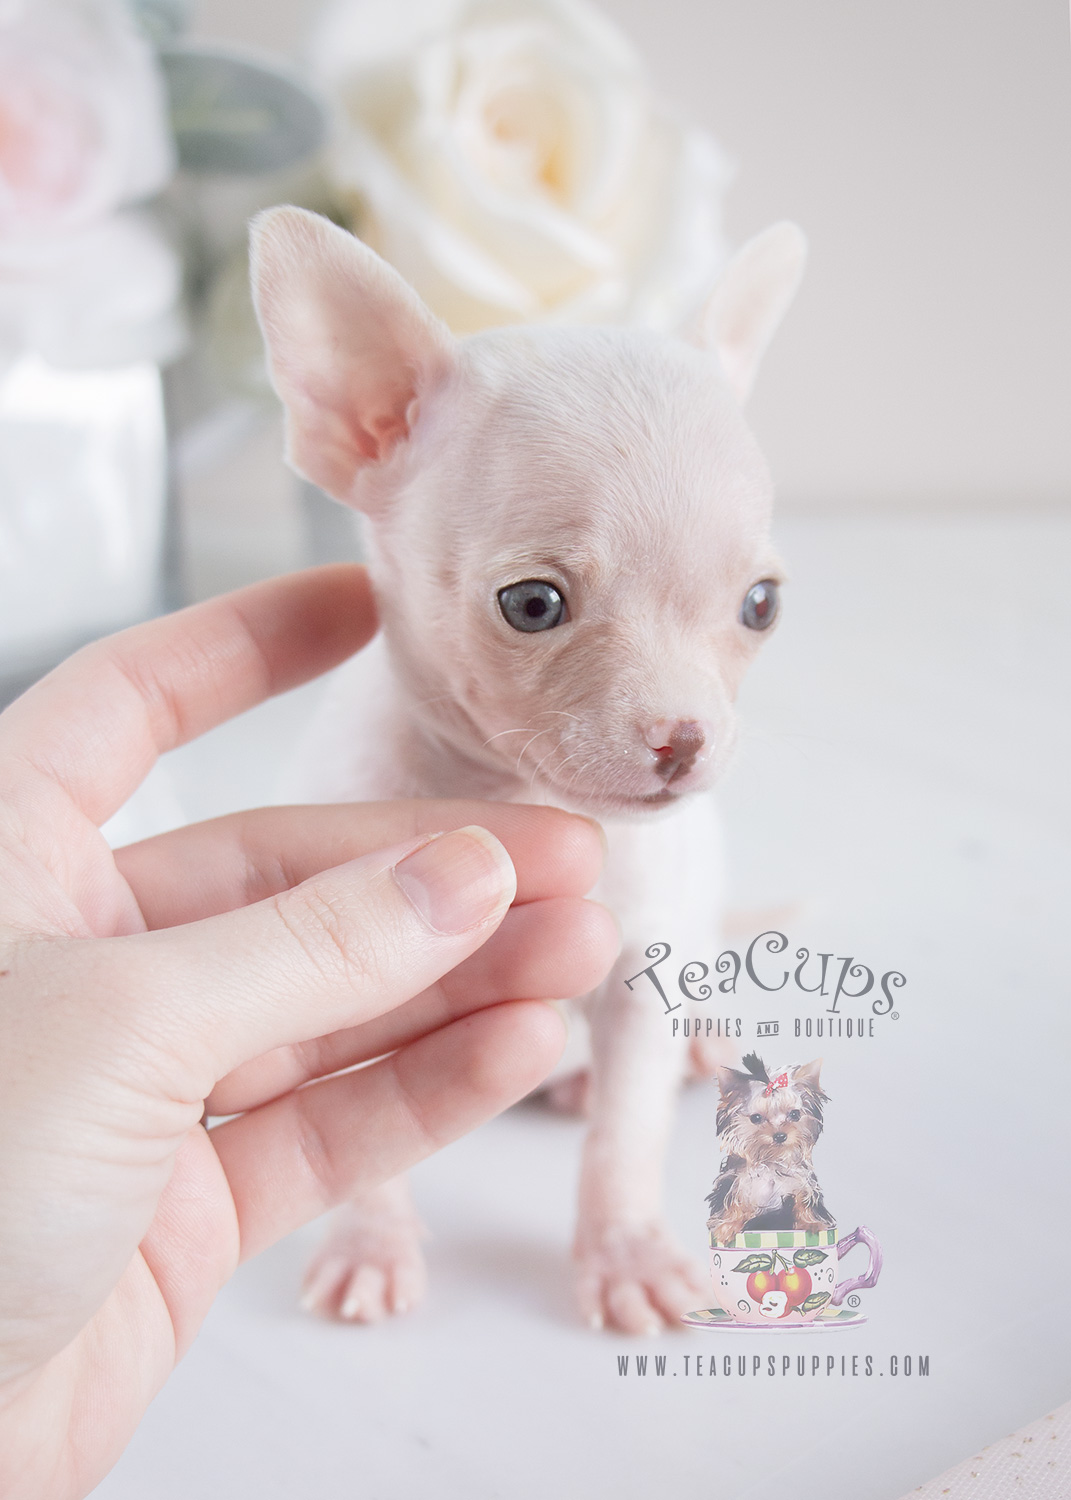 For Sale #069 Teacup Puppies Chihuahua Puppy